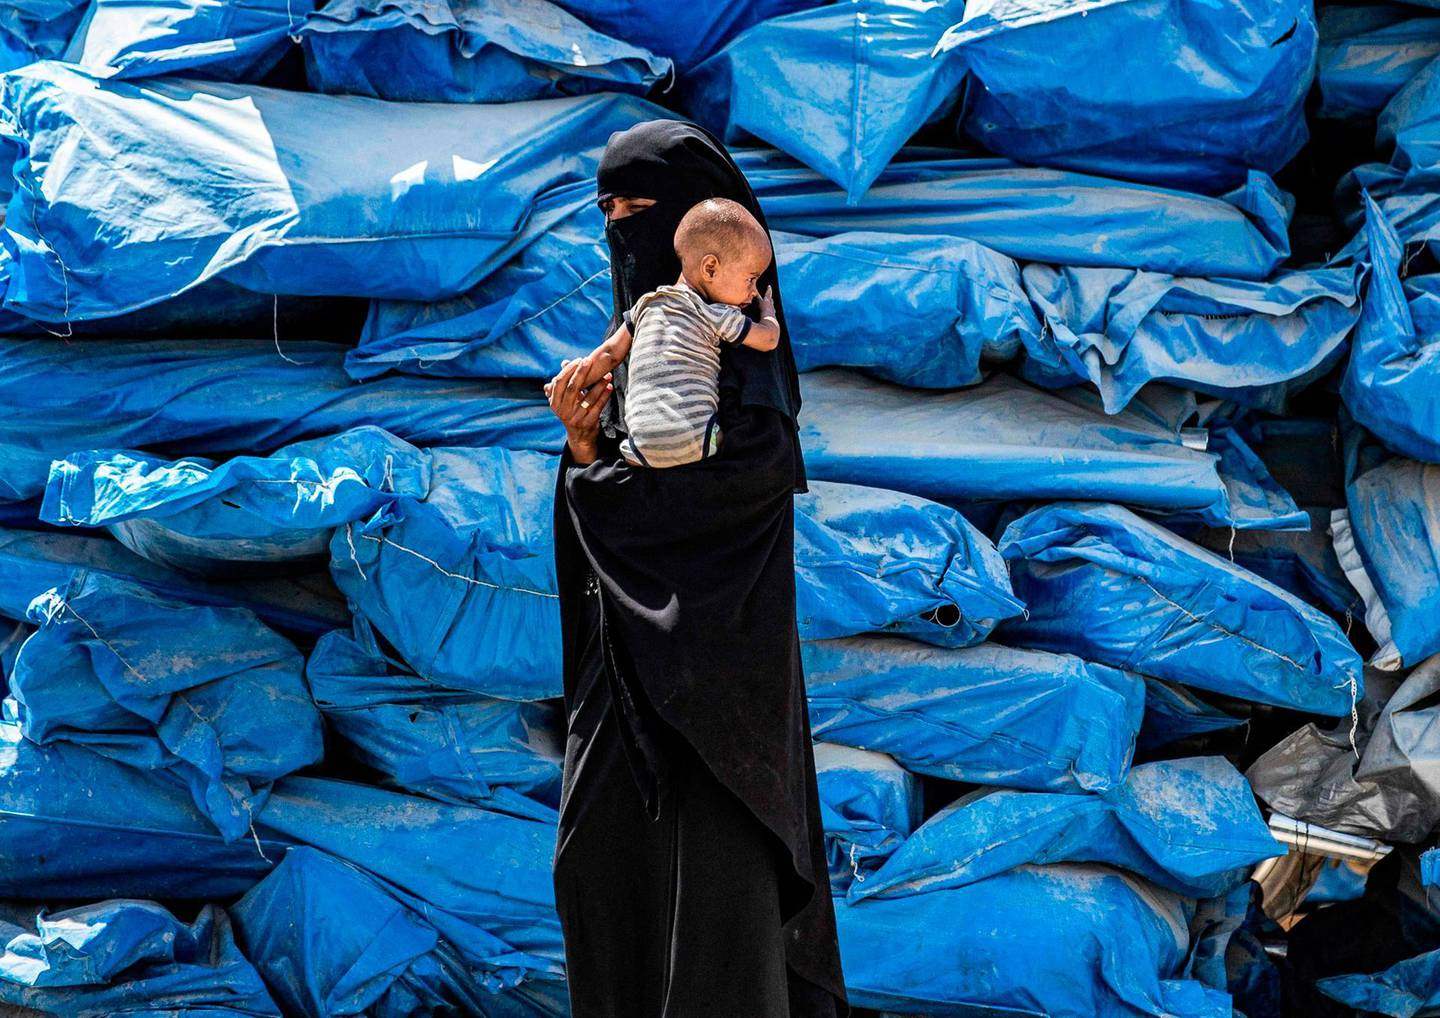 TOPSHOT - A woman wearing a niqab (full face veil) walks carrying an infant at al-Hol camp for displaced people in al-Hasakeh governorate in northeastern Syria on July 22, 2019, as people collect UN-provided humanitarian aid packages.  / AFP / Delil souleiman